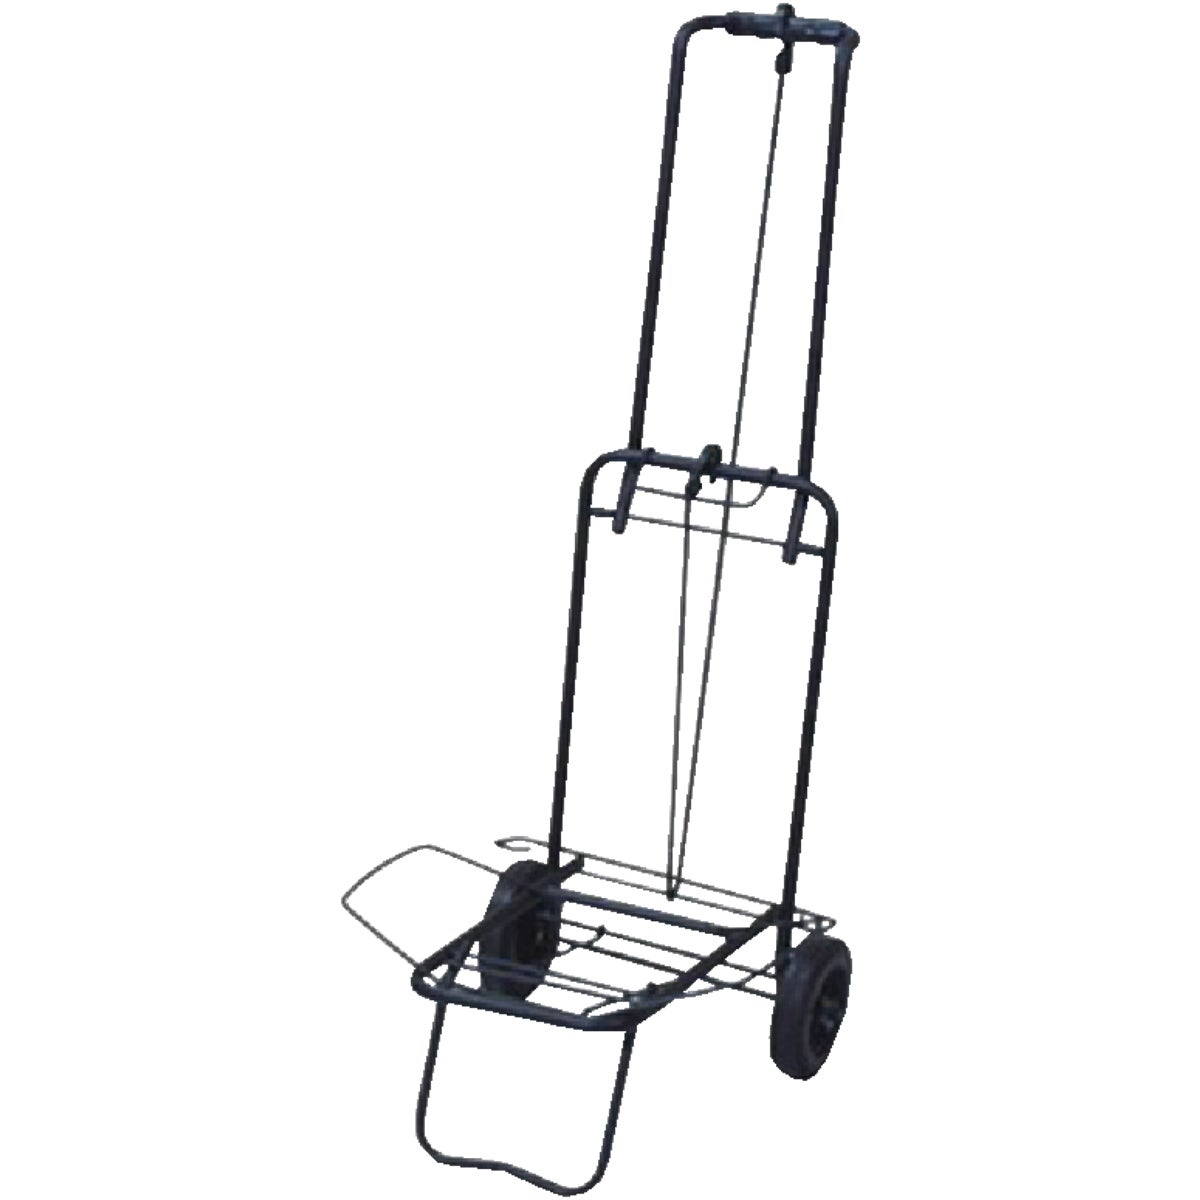 BLACK LUGGAGE CART - L02BK by Narita Trading